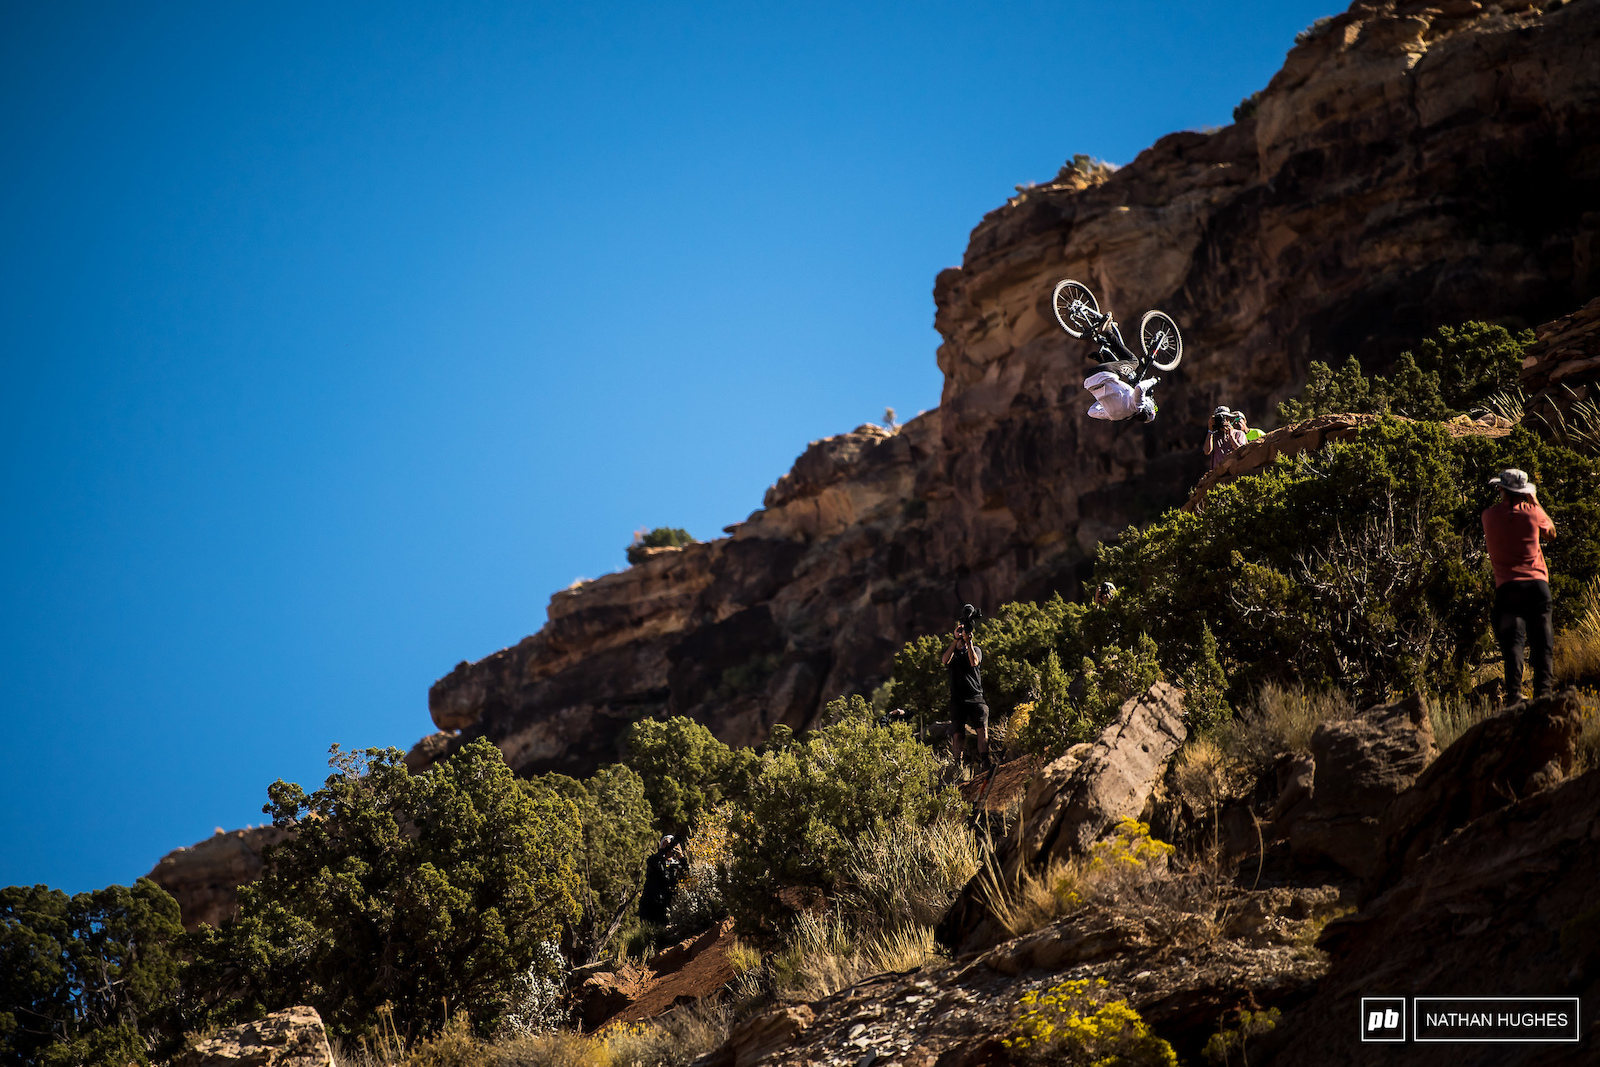 A front flip from Tom Van Steenbergen was definitely the move of the day during the top drop session.